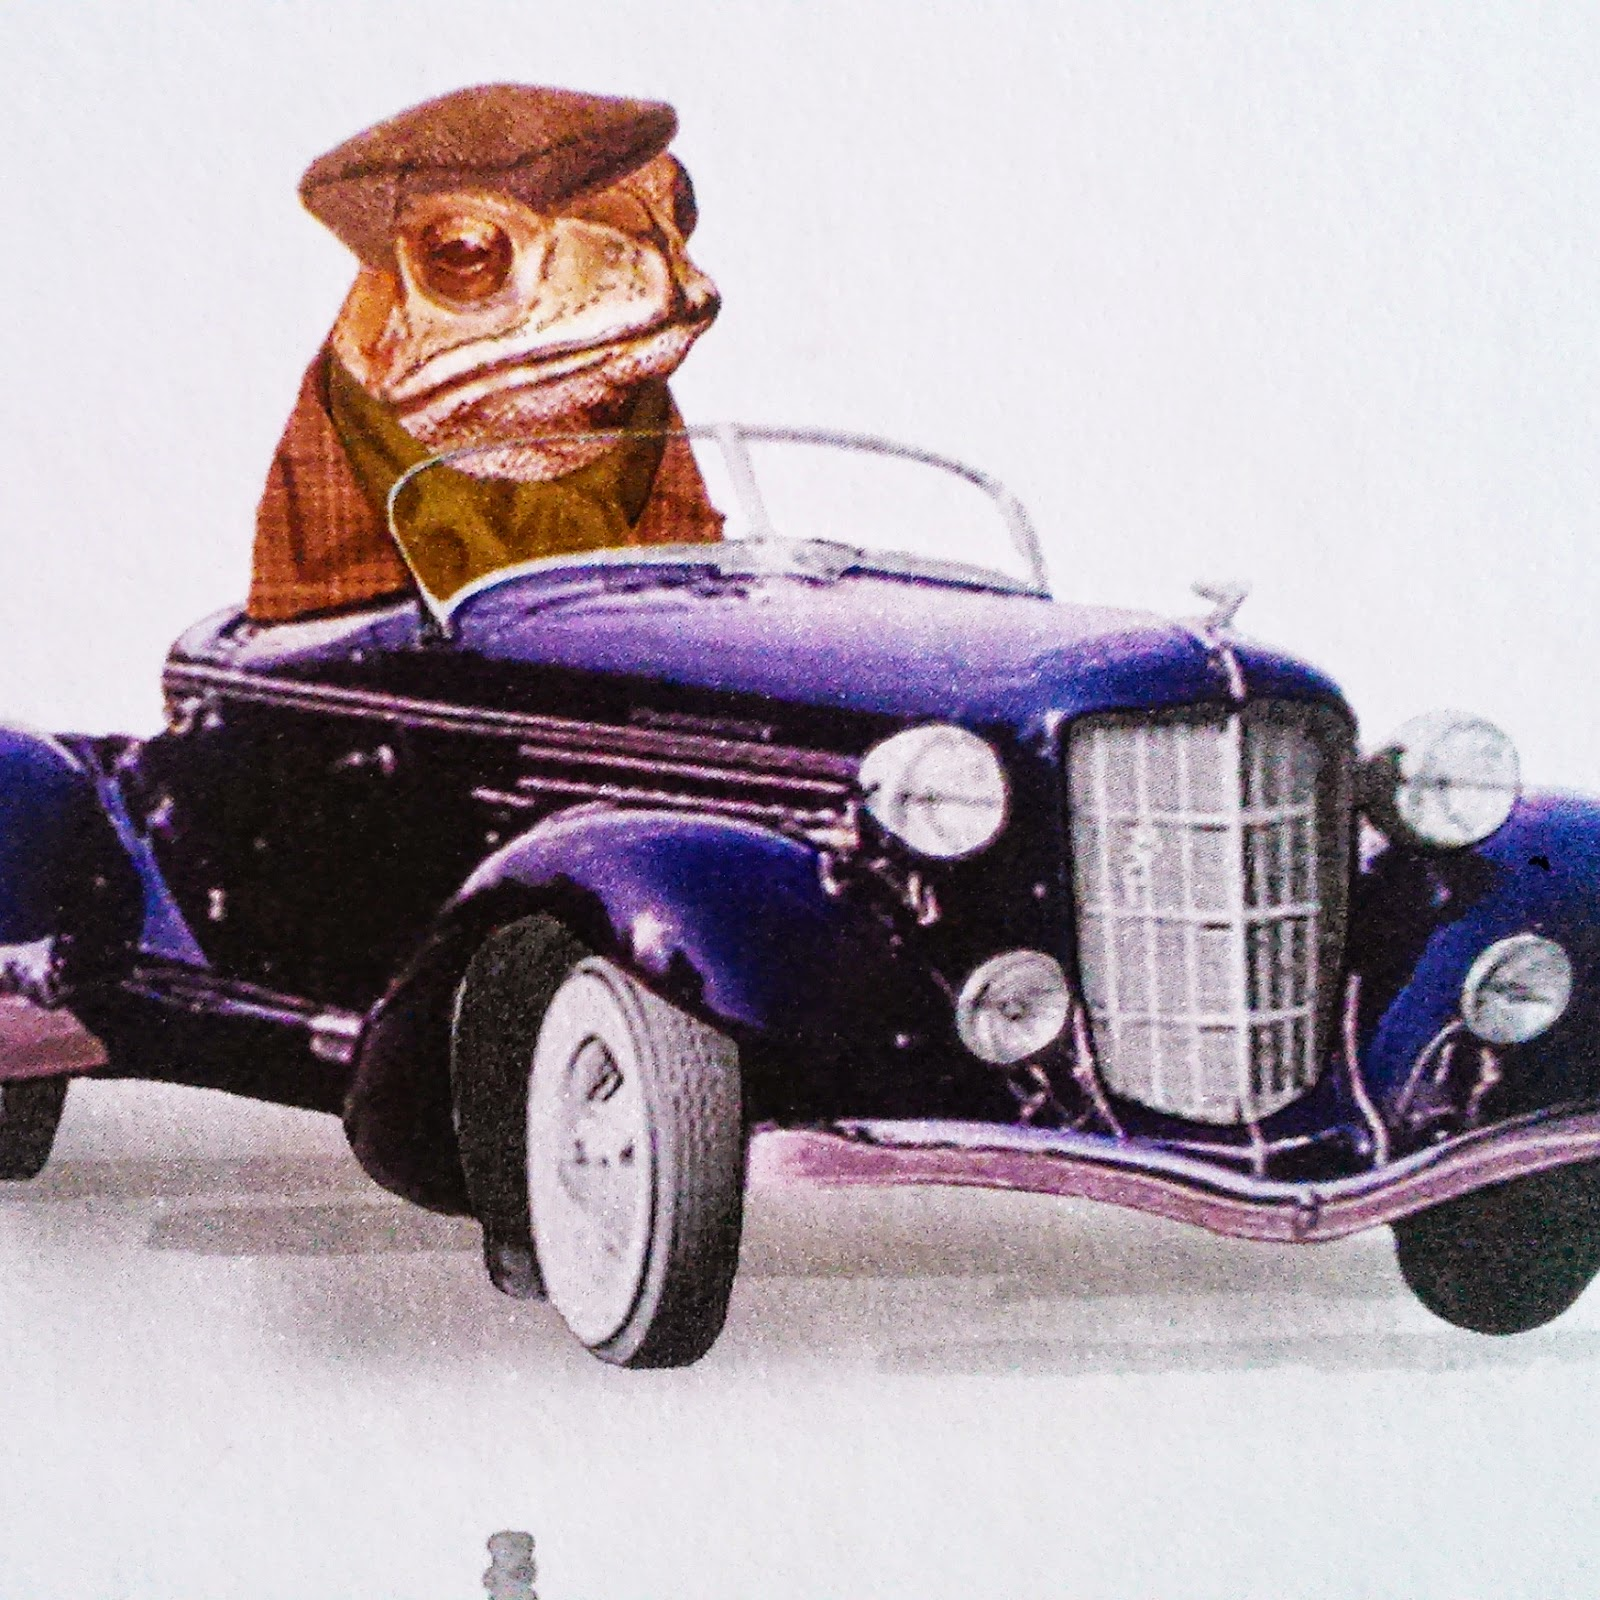 A toad in a flat cap driving a Rolls Royce from some wacky wallpaper in a guesthouse in York.